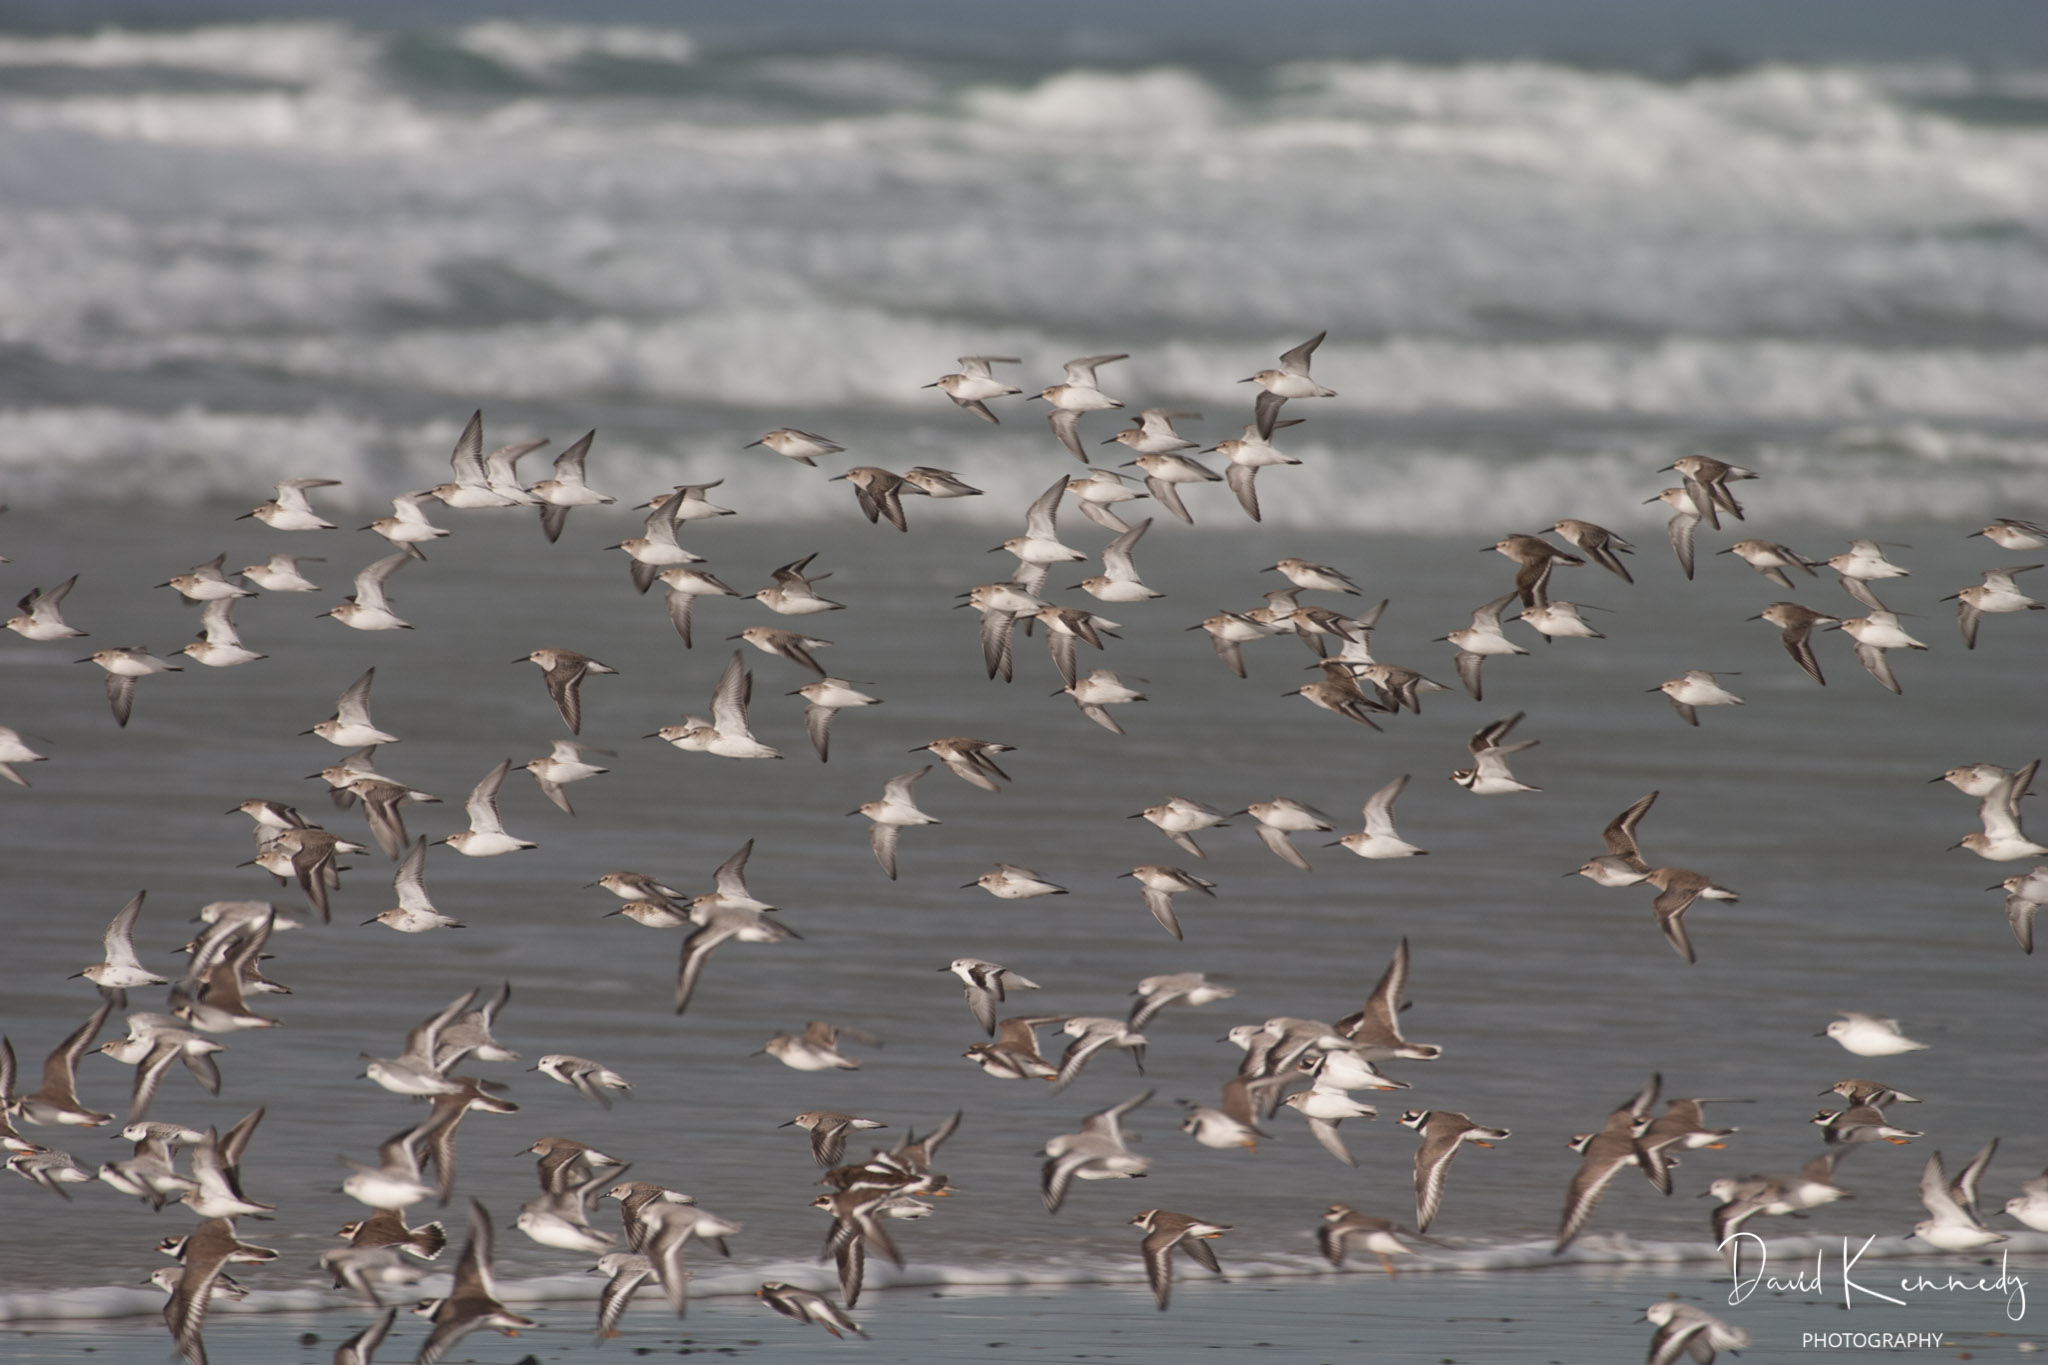 A squall of birds taking off from a beach with waves behind